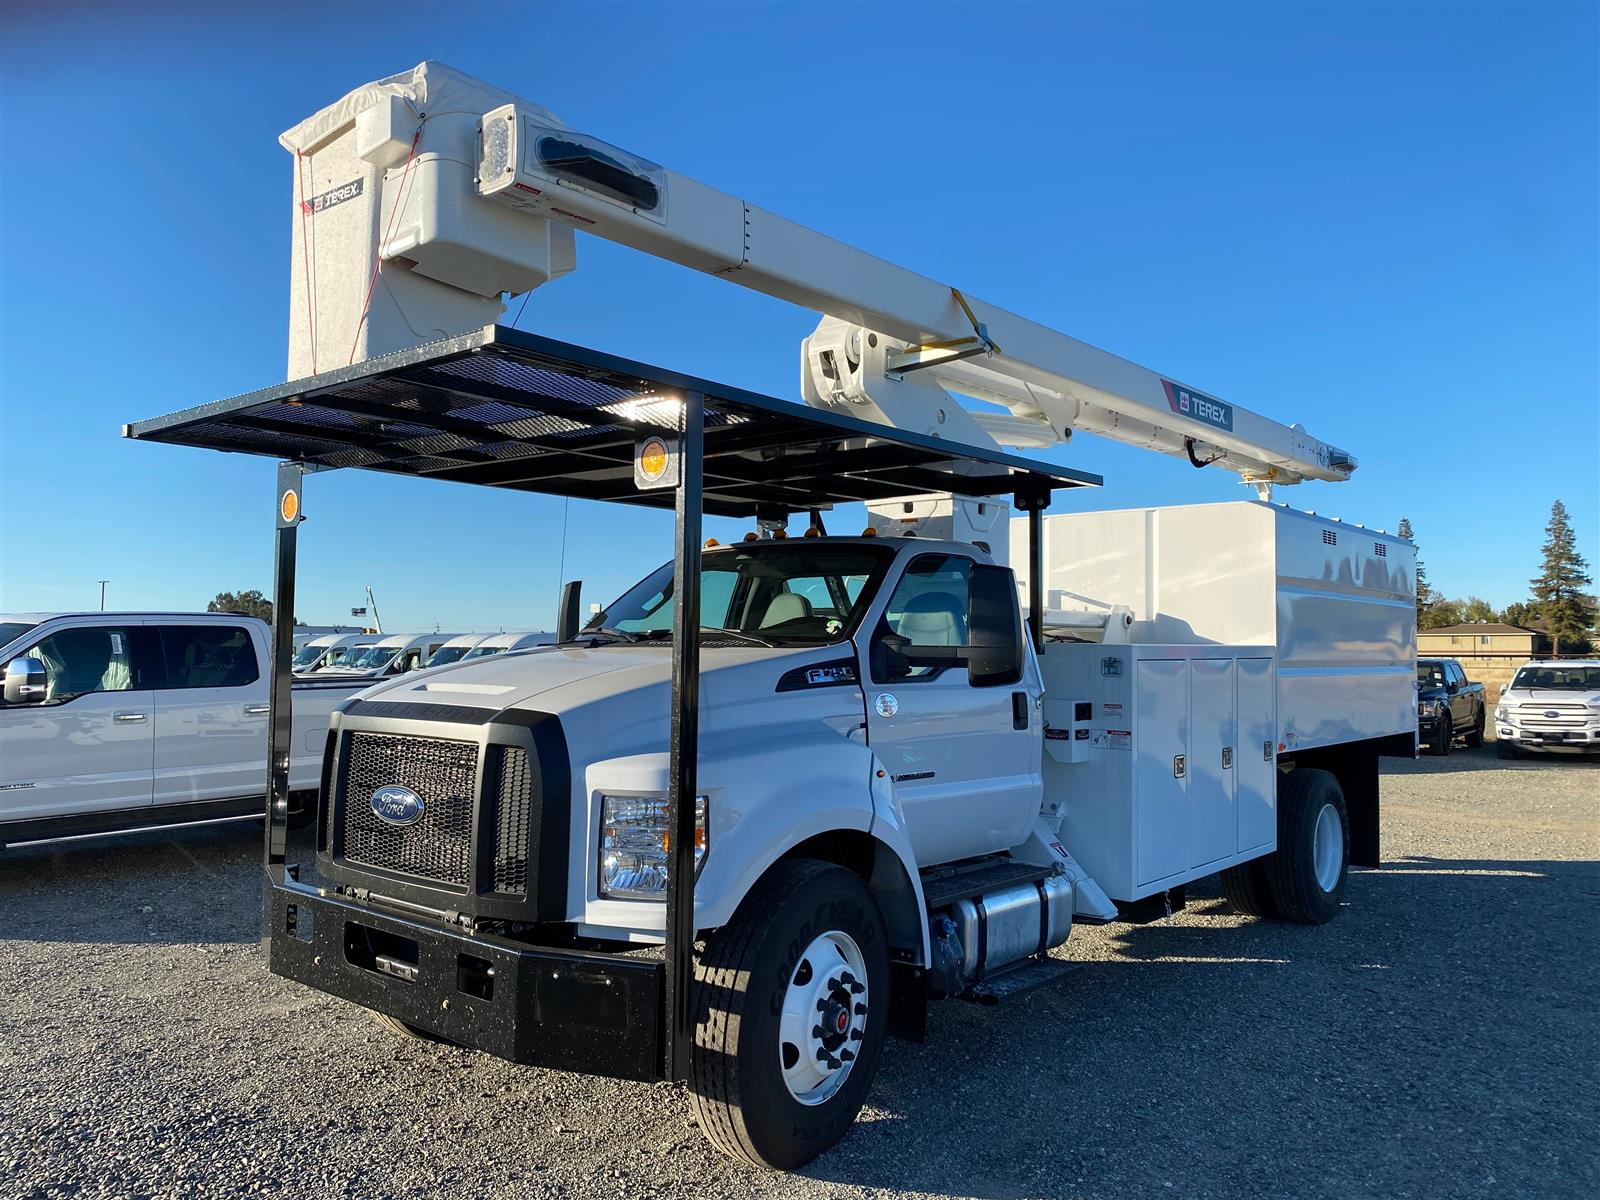 2021 Ford F-750 Regular Cab DRW 4x2, Terex XT PRO 70 Hi-Ranger Insulated Articulating  Over Center Aerial Lift with body.  #80104 - photo 1